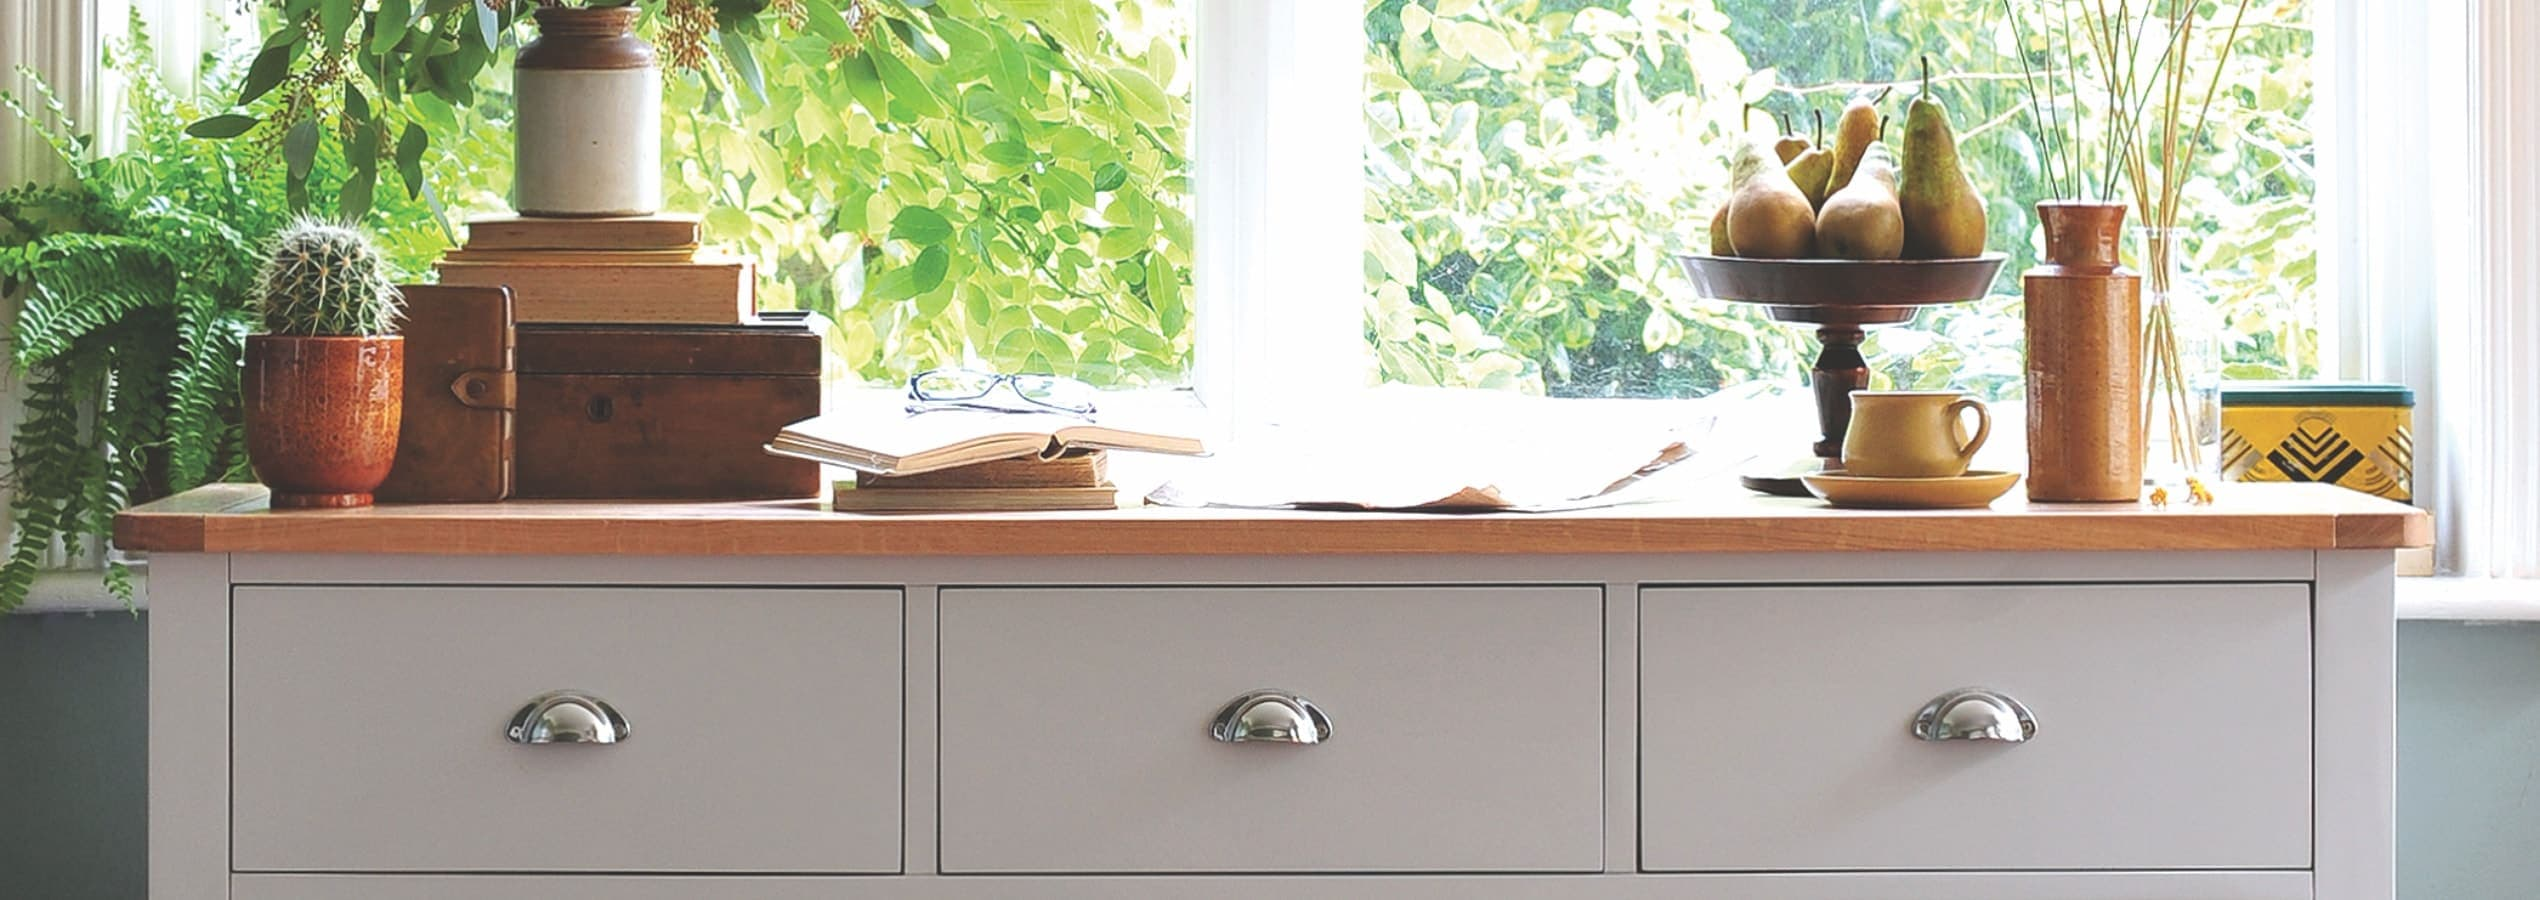 Timeless Neutrals - Perfect for adding modern country charm from only £75.